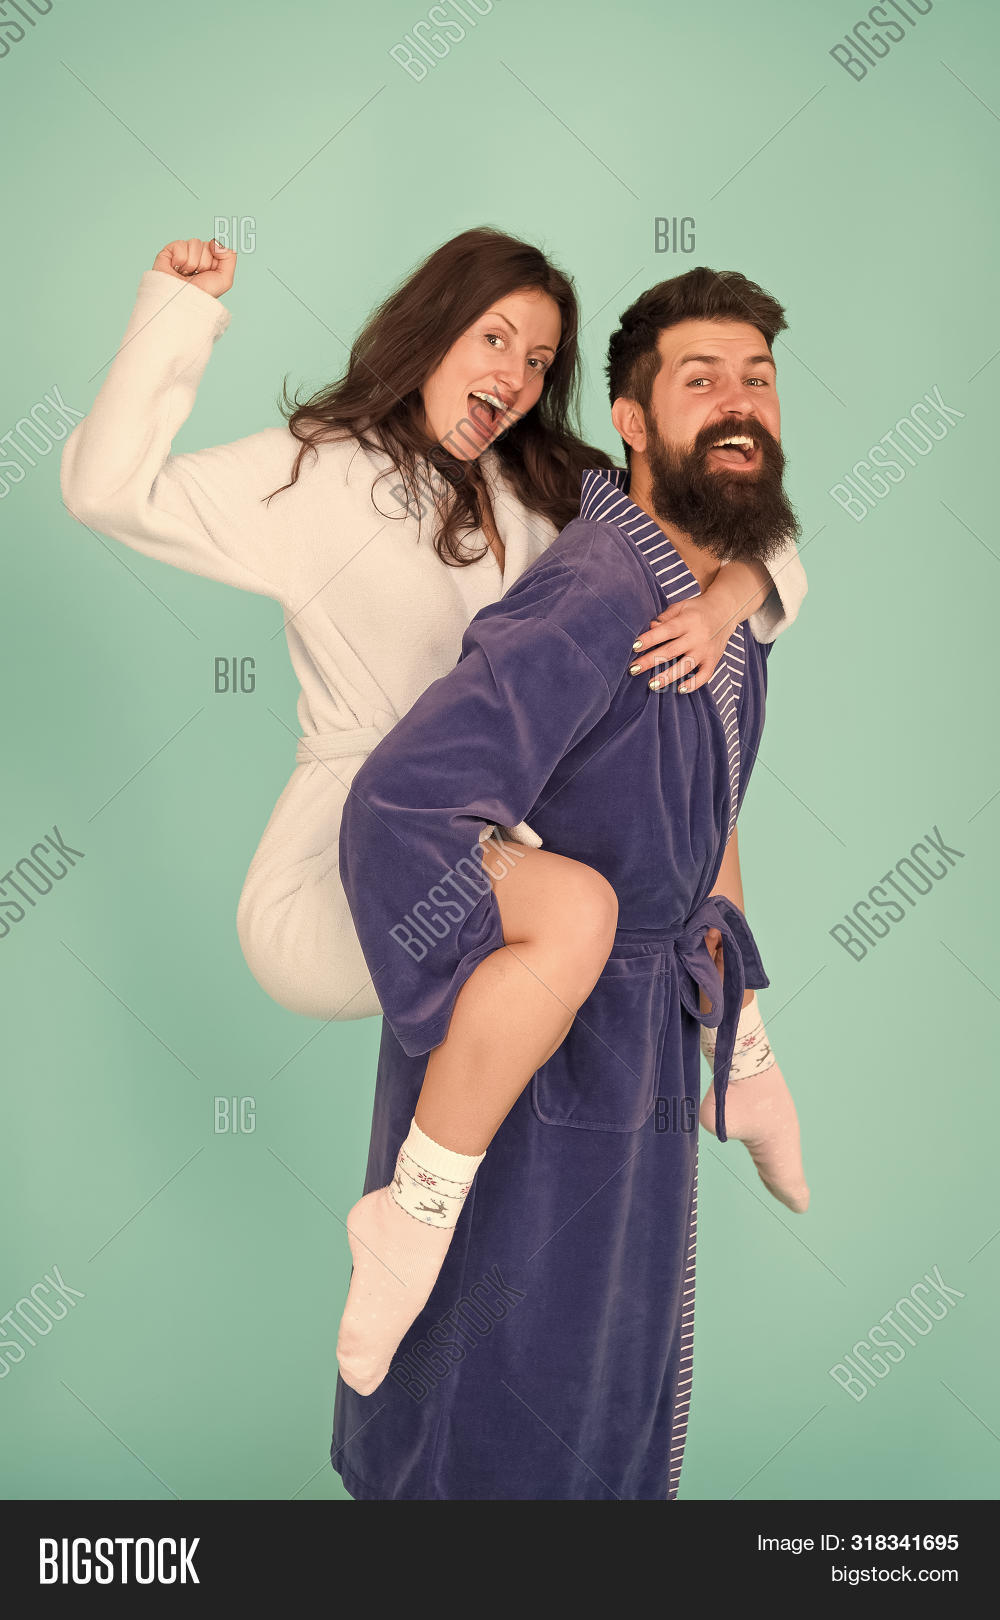 adorable,always,background,bathrobes,bearded,beautiful,care,carry,couple,cute,domestic,enjoying,every,family,friendship,fun,handsome,happiness,happy,have,having,hipster,home,husband,leisure,lets,love,man,piggybacking,pretty,relations,relationship,relax,ride,second,smile,socks,stay,they,together,togetherness,turquoise,weekend,wife,woman,young